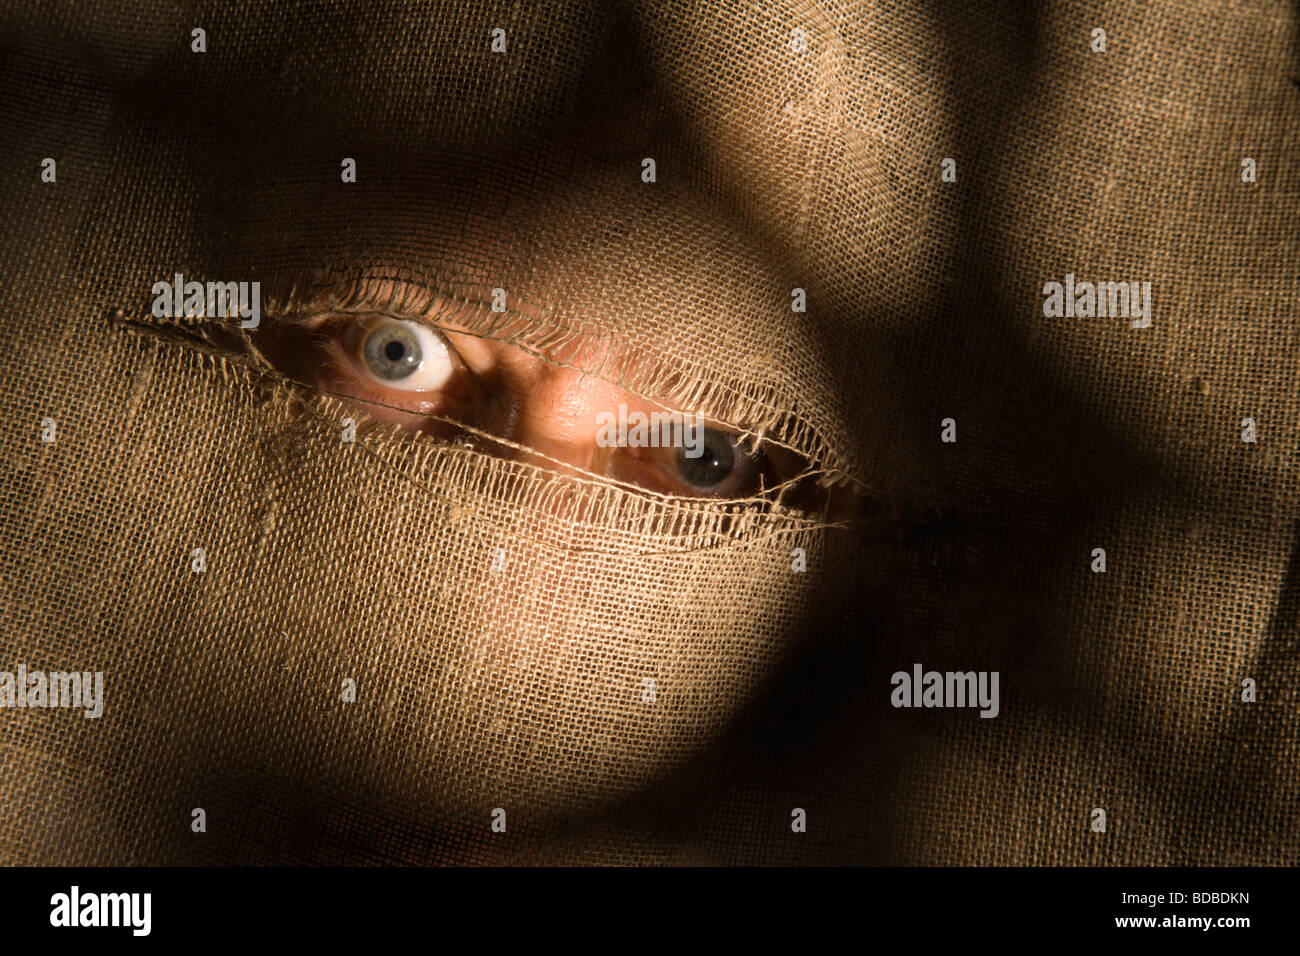 Menacing eyes stare through a slit torn the cloth. - Stock Image